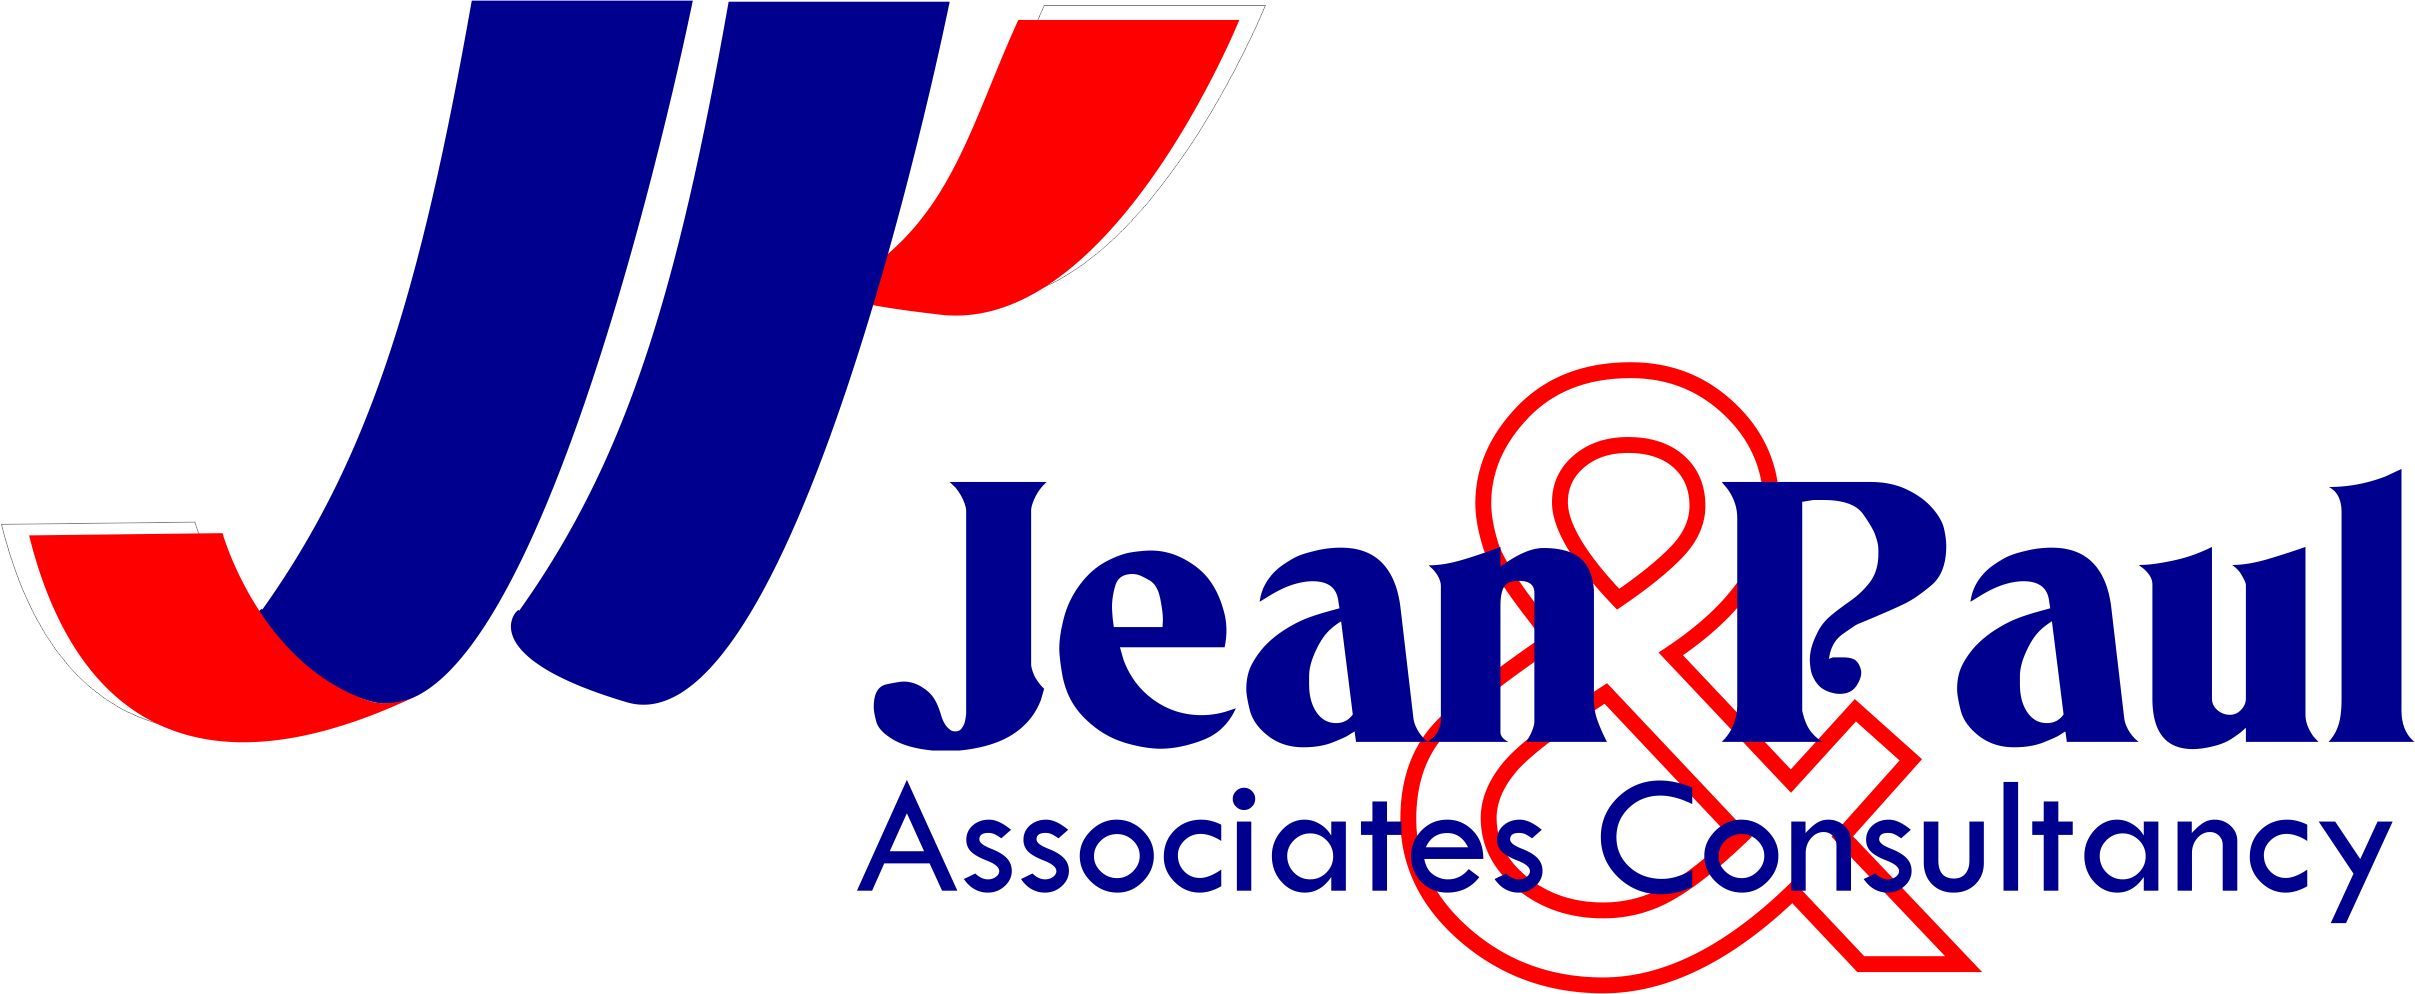 Jean-Paul and Associates Consultancy